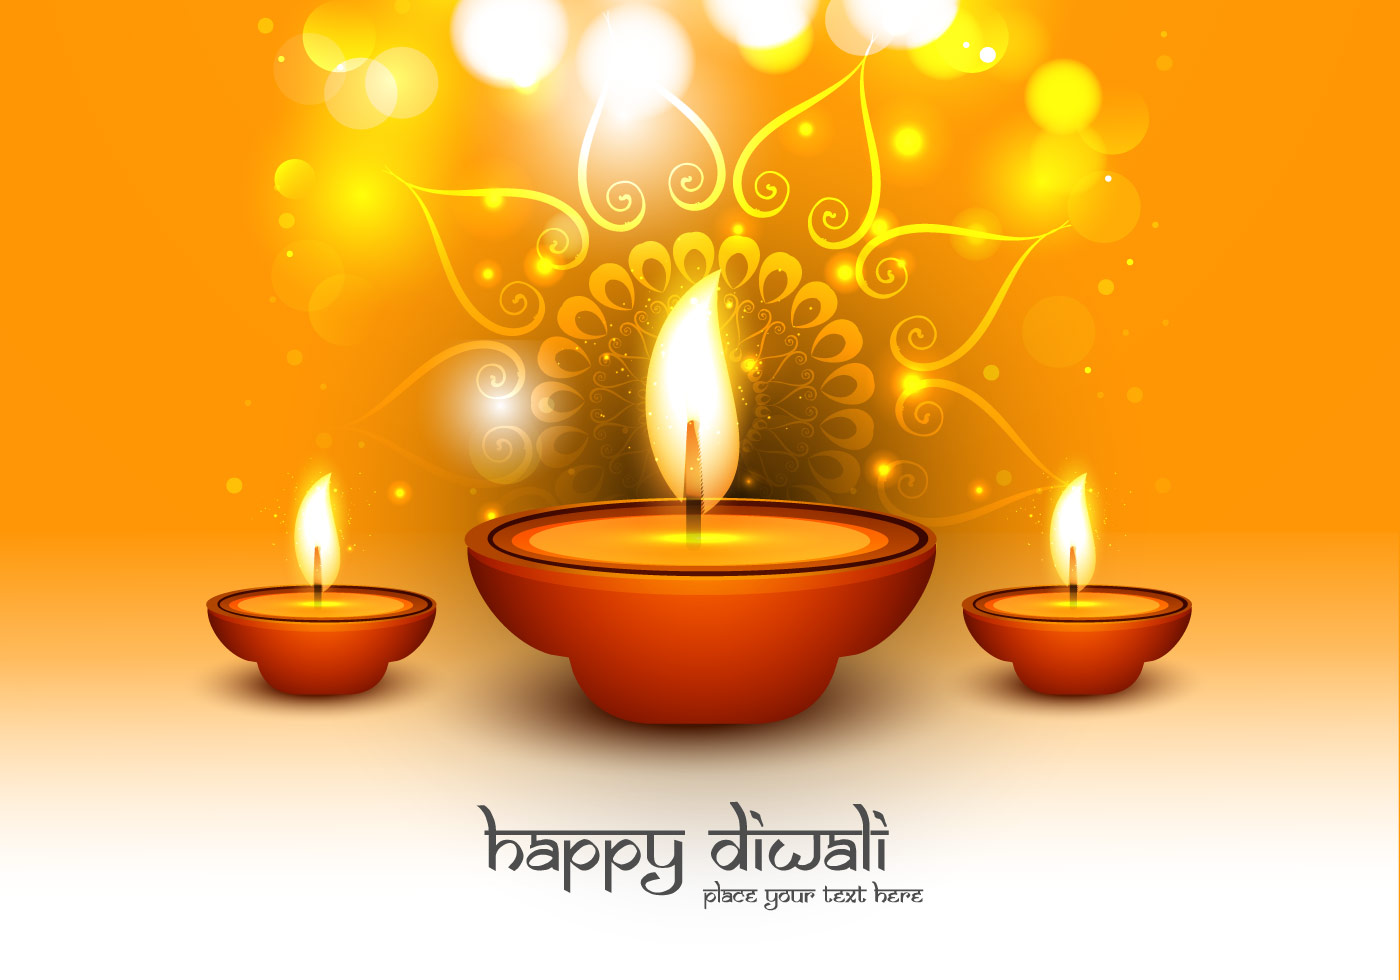 Happy Diwali Text With Oil Lit Lamps - Download Free ...